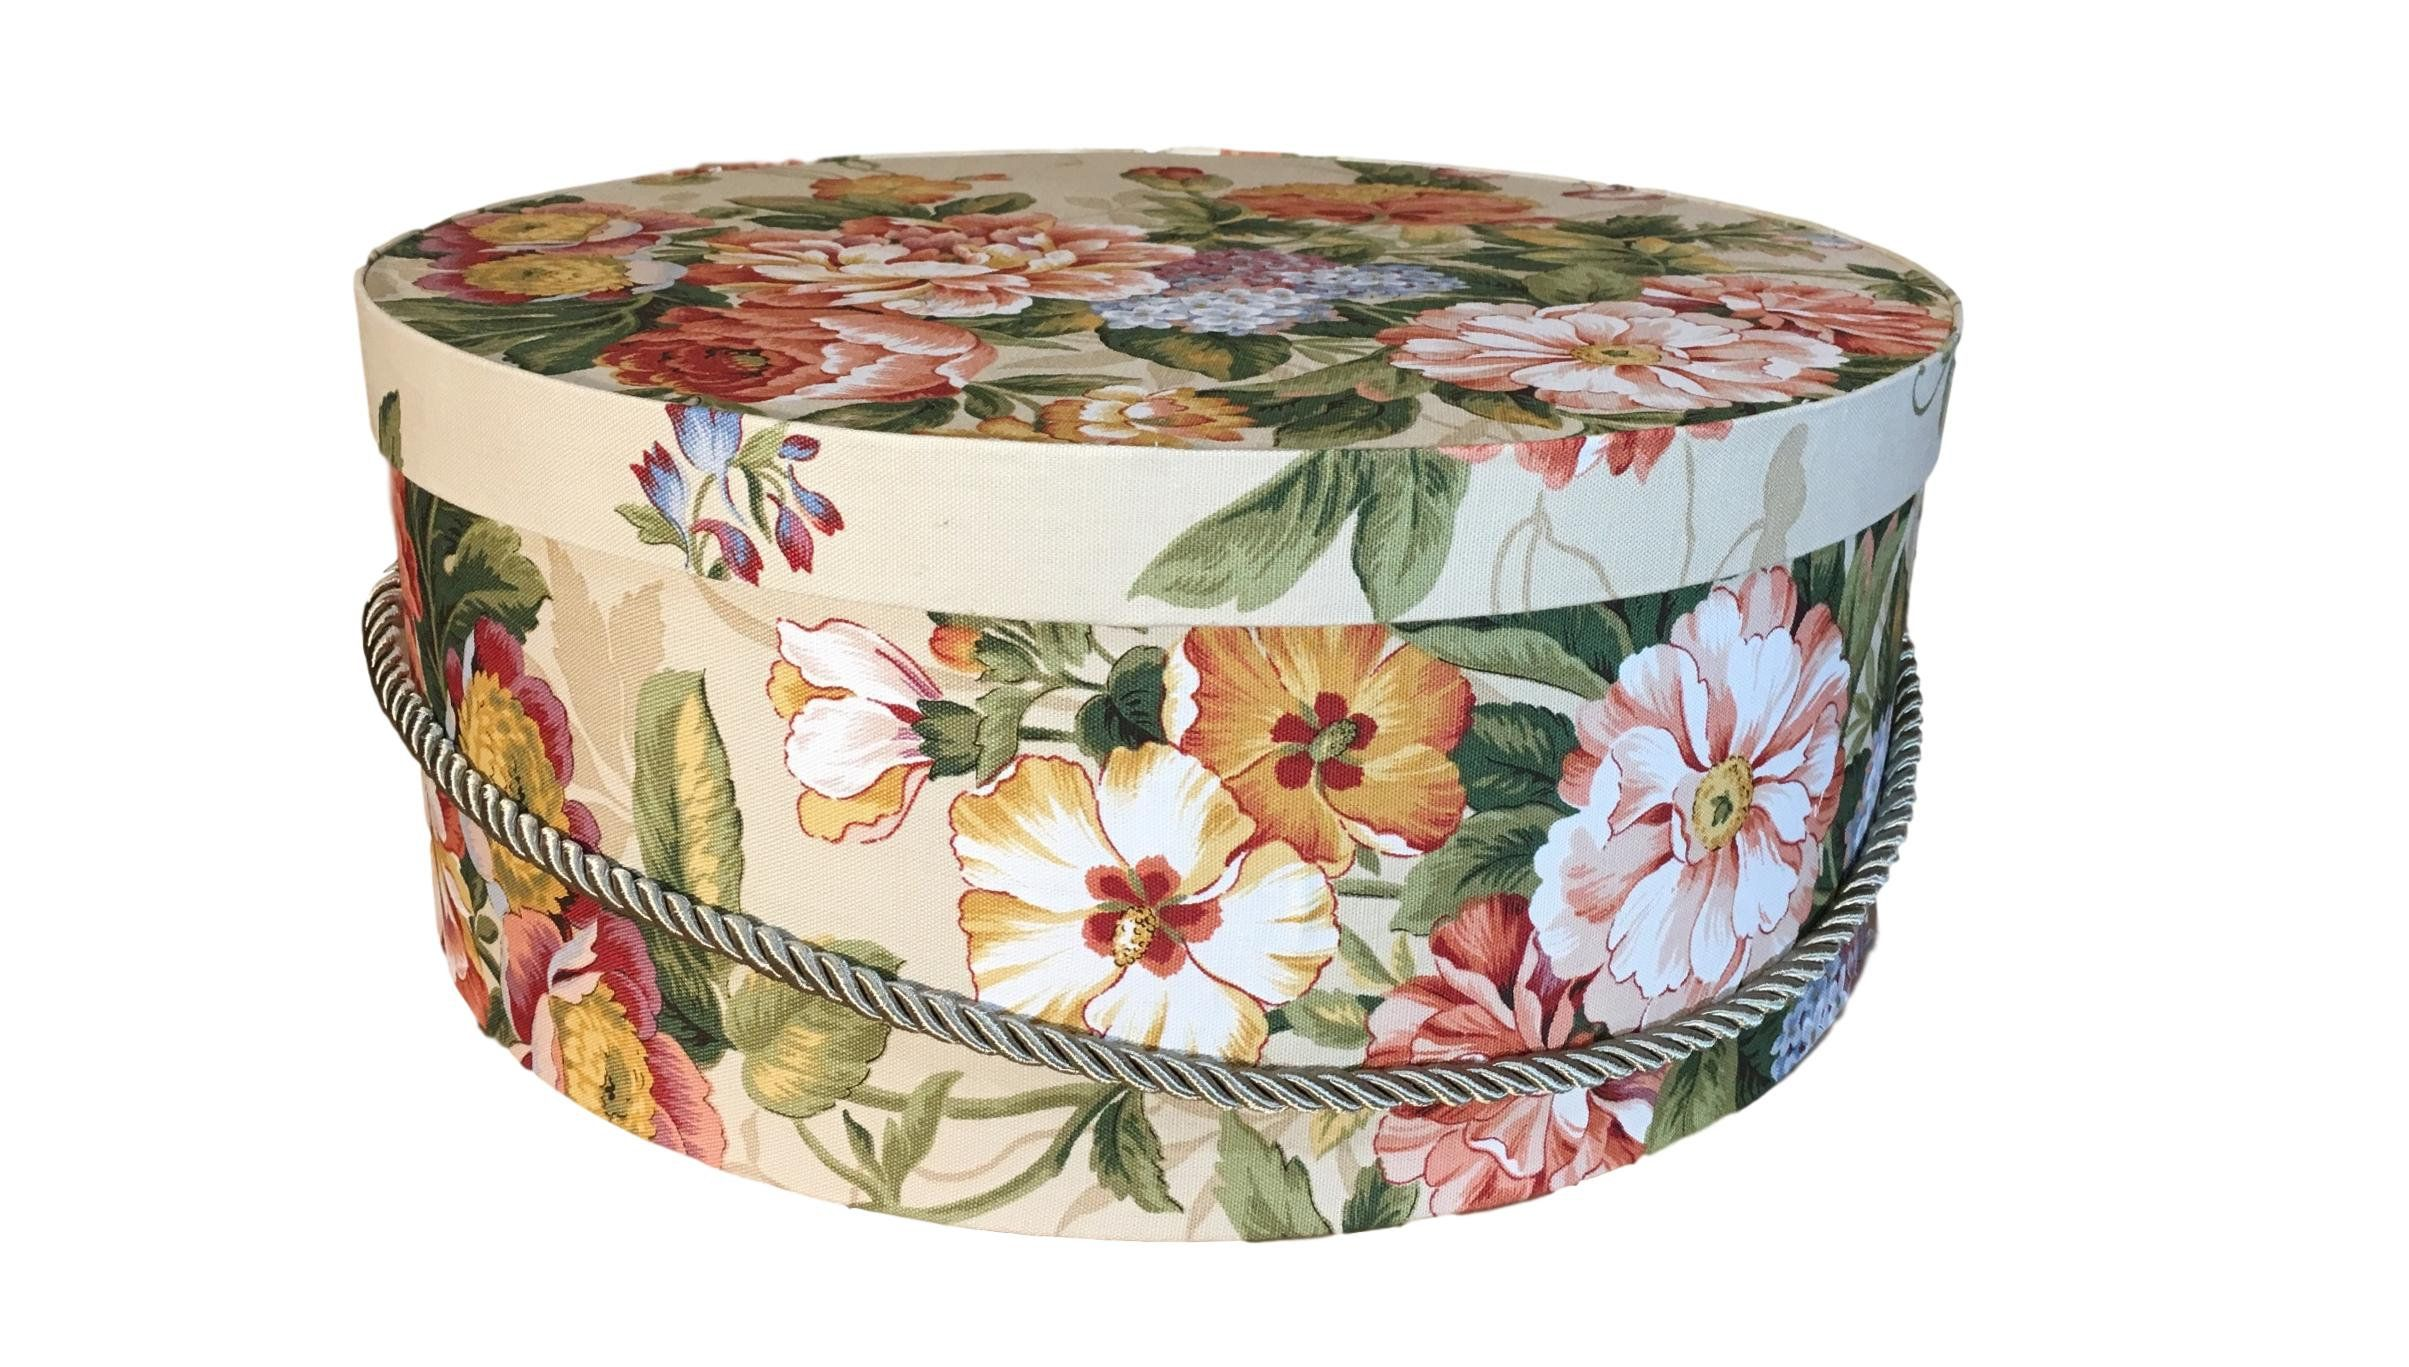 Extra Large Hat Box In Tan Floral Decorative Fabric Covered Hat Boxes Round Storage Box Keepsake Boxes With Lid Nesting Hat Box Fabric Decor Hat Boxes